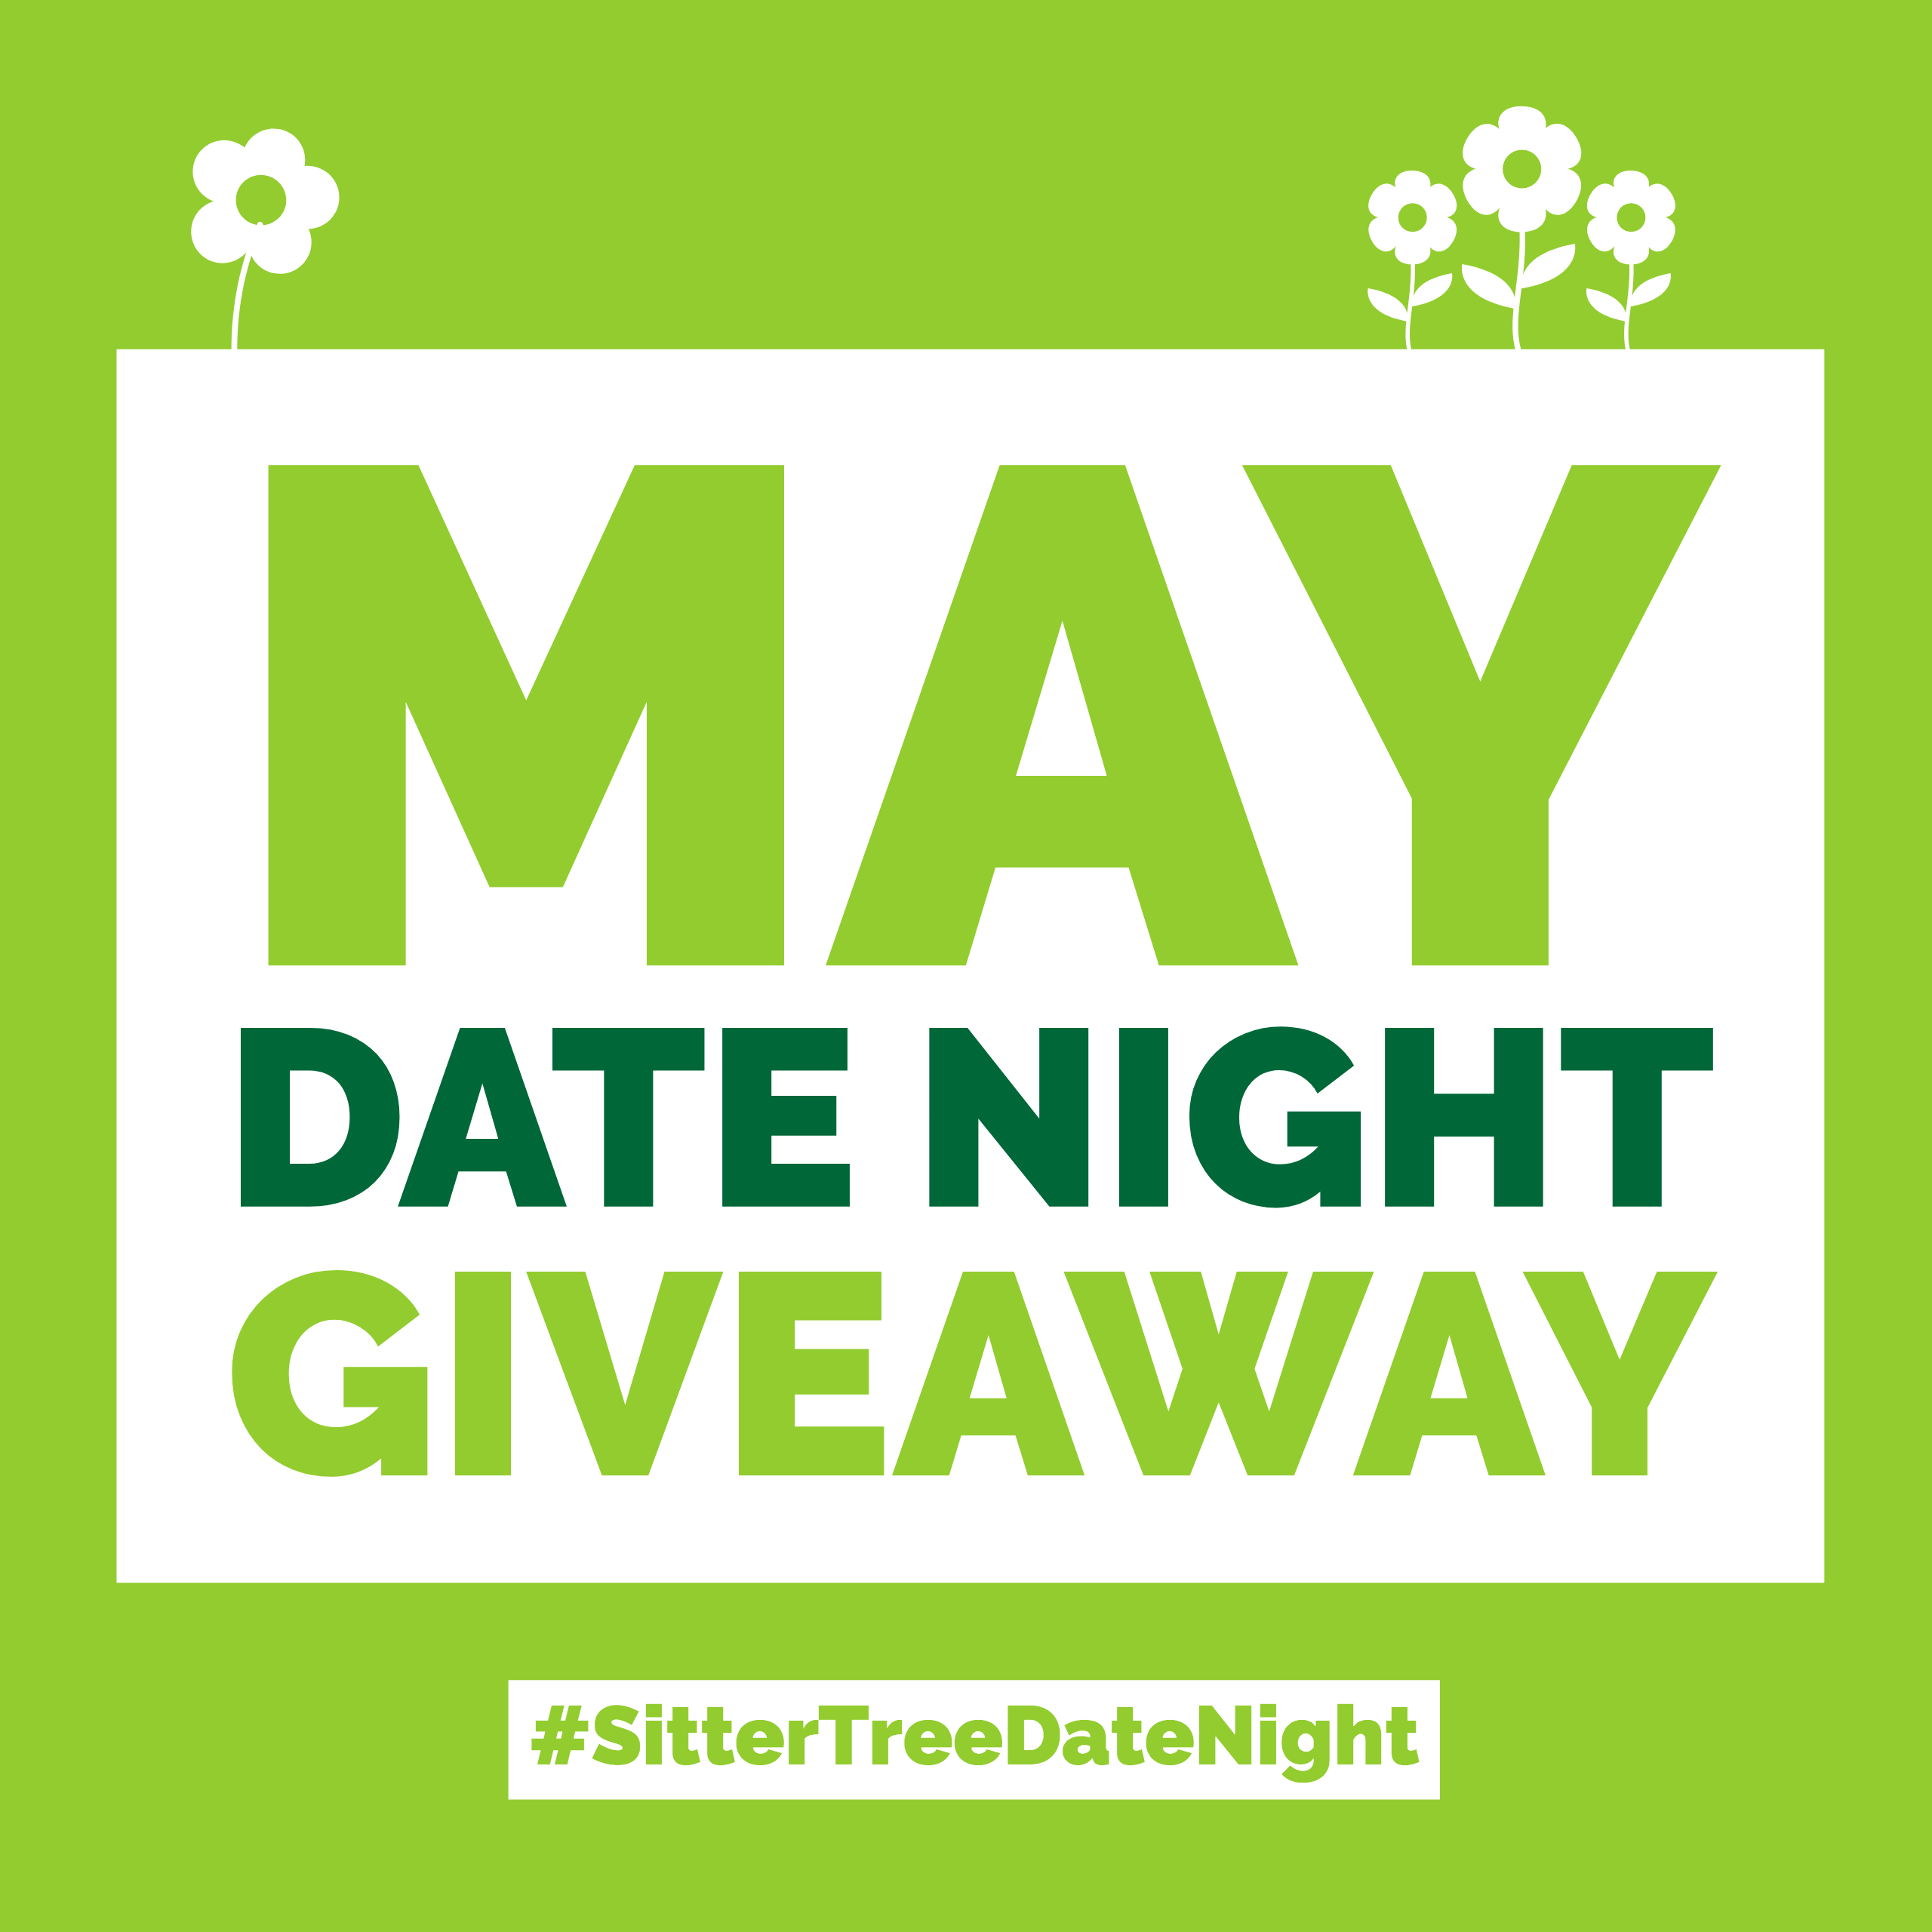 May Date Night Giveaway: FREE Babysitting + FREE Home Organization